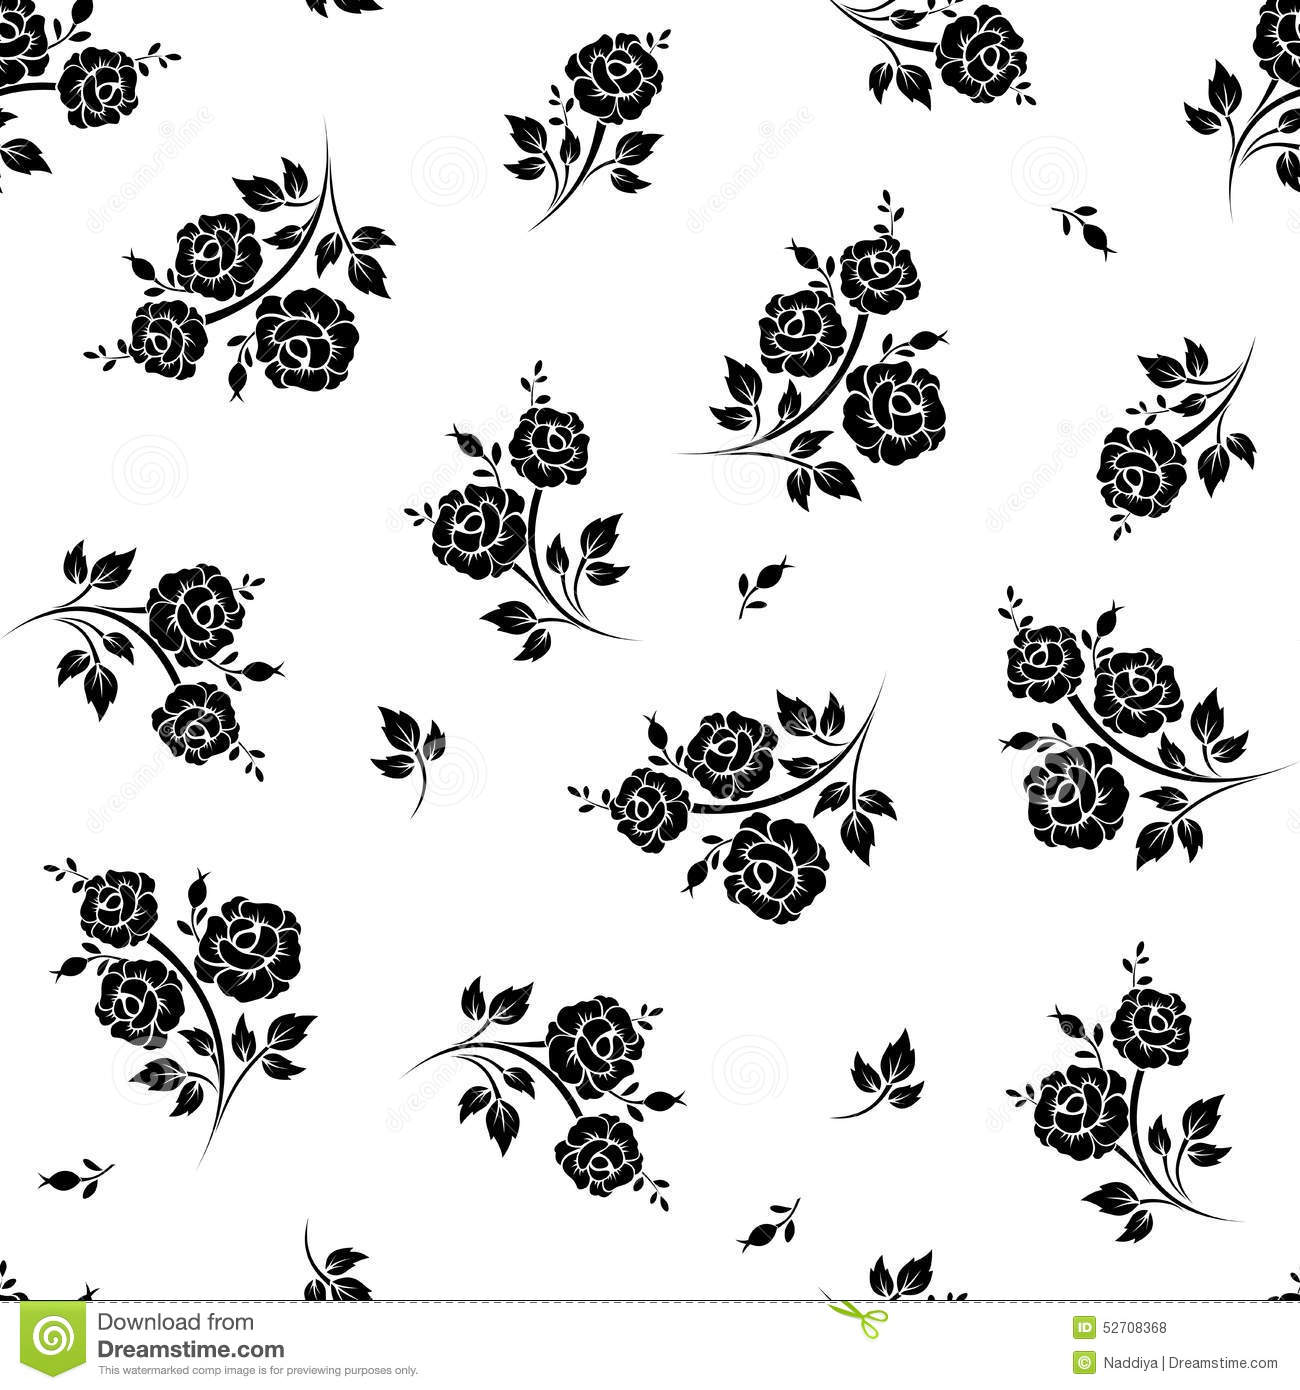 Seamless Black And White Floral Pattern Vector Illustration